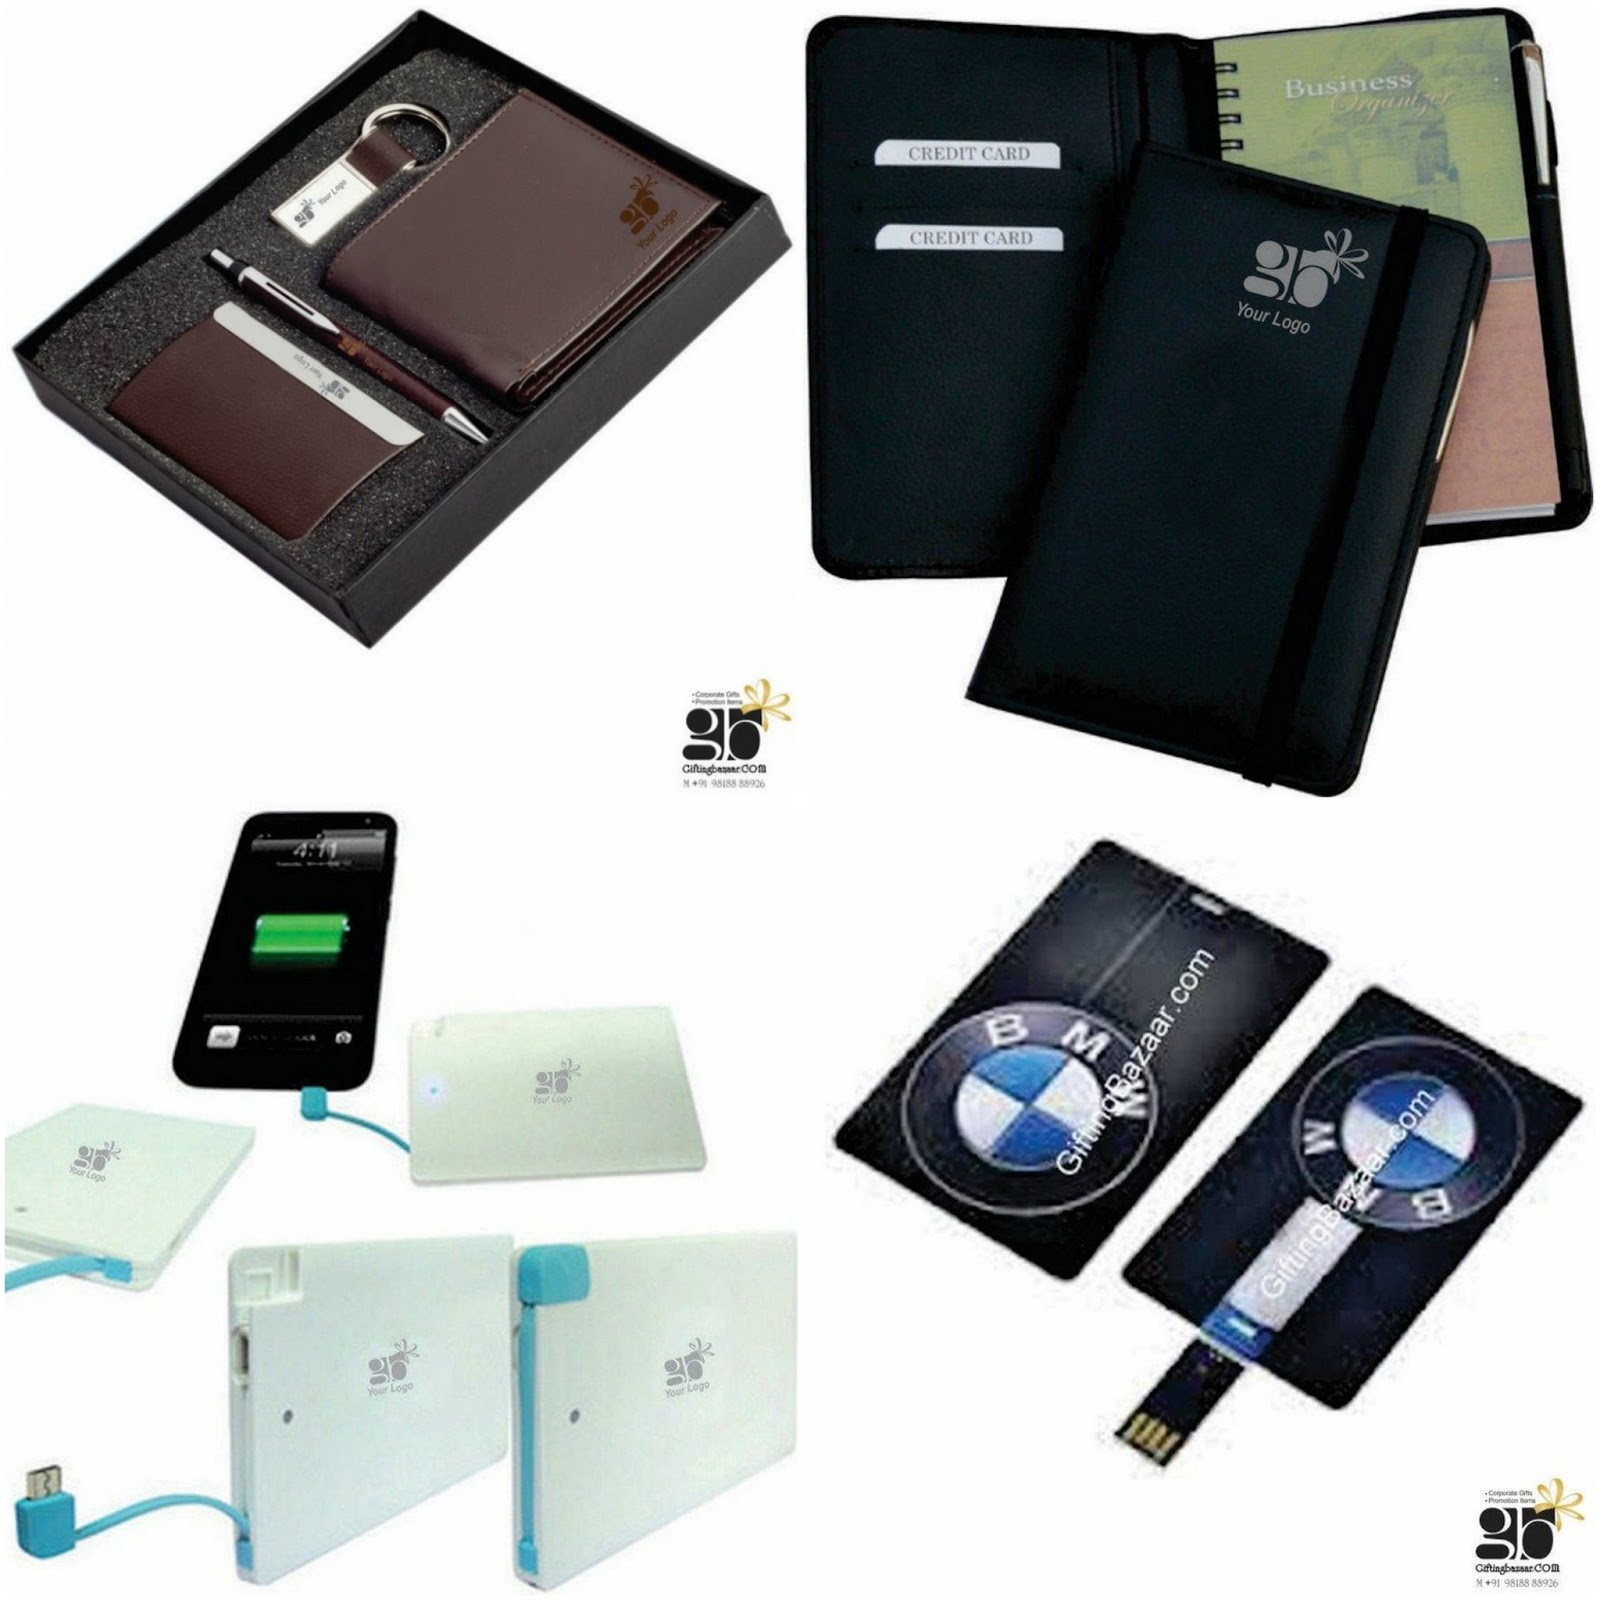 Latest Corporate gift - For Corporate Gifts in Delhi, Noida, Gurgaon